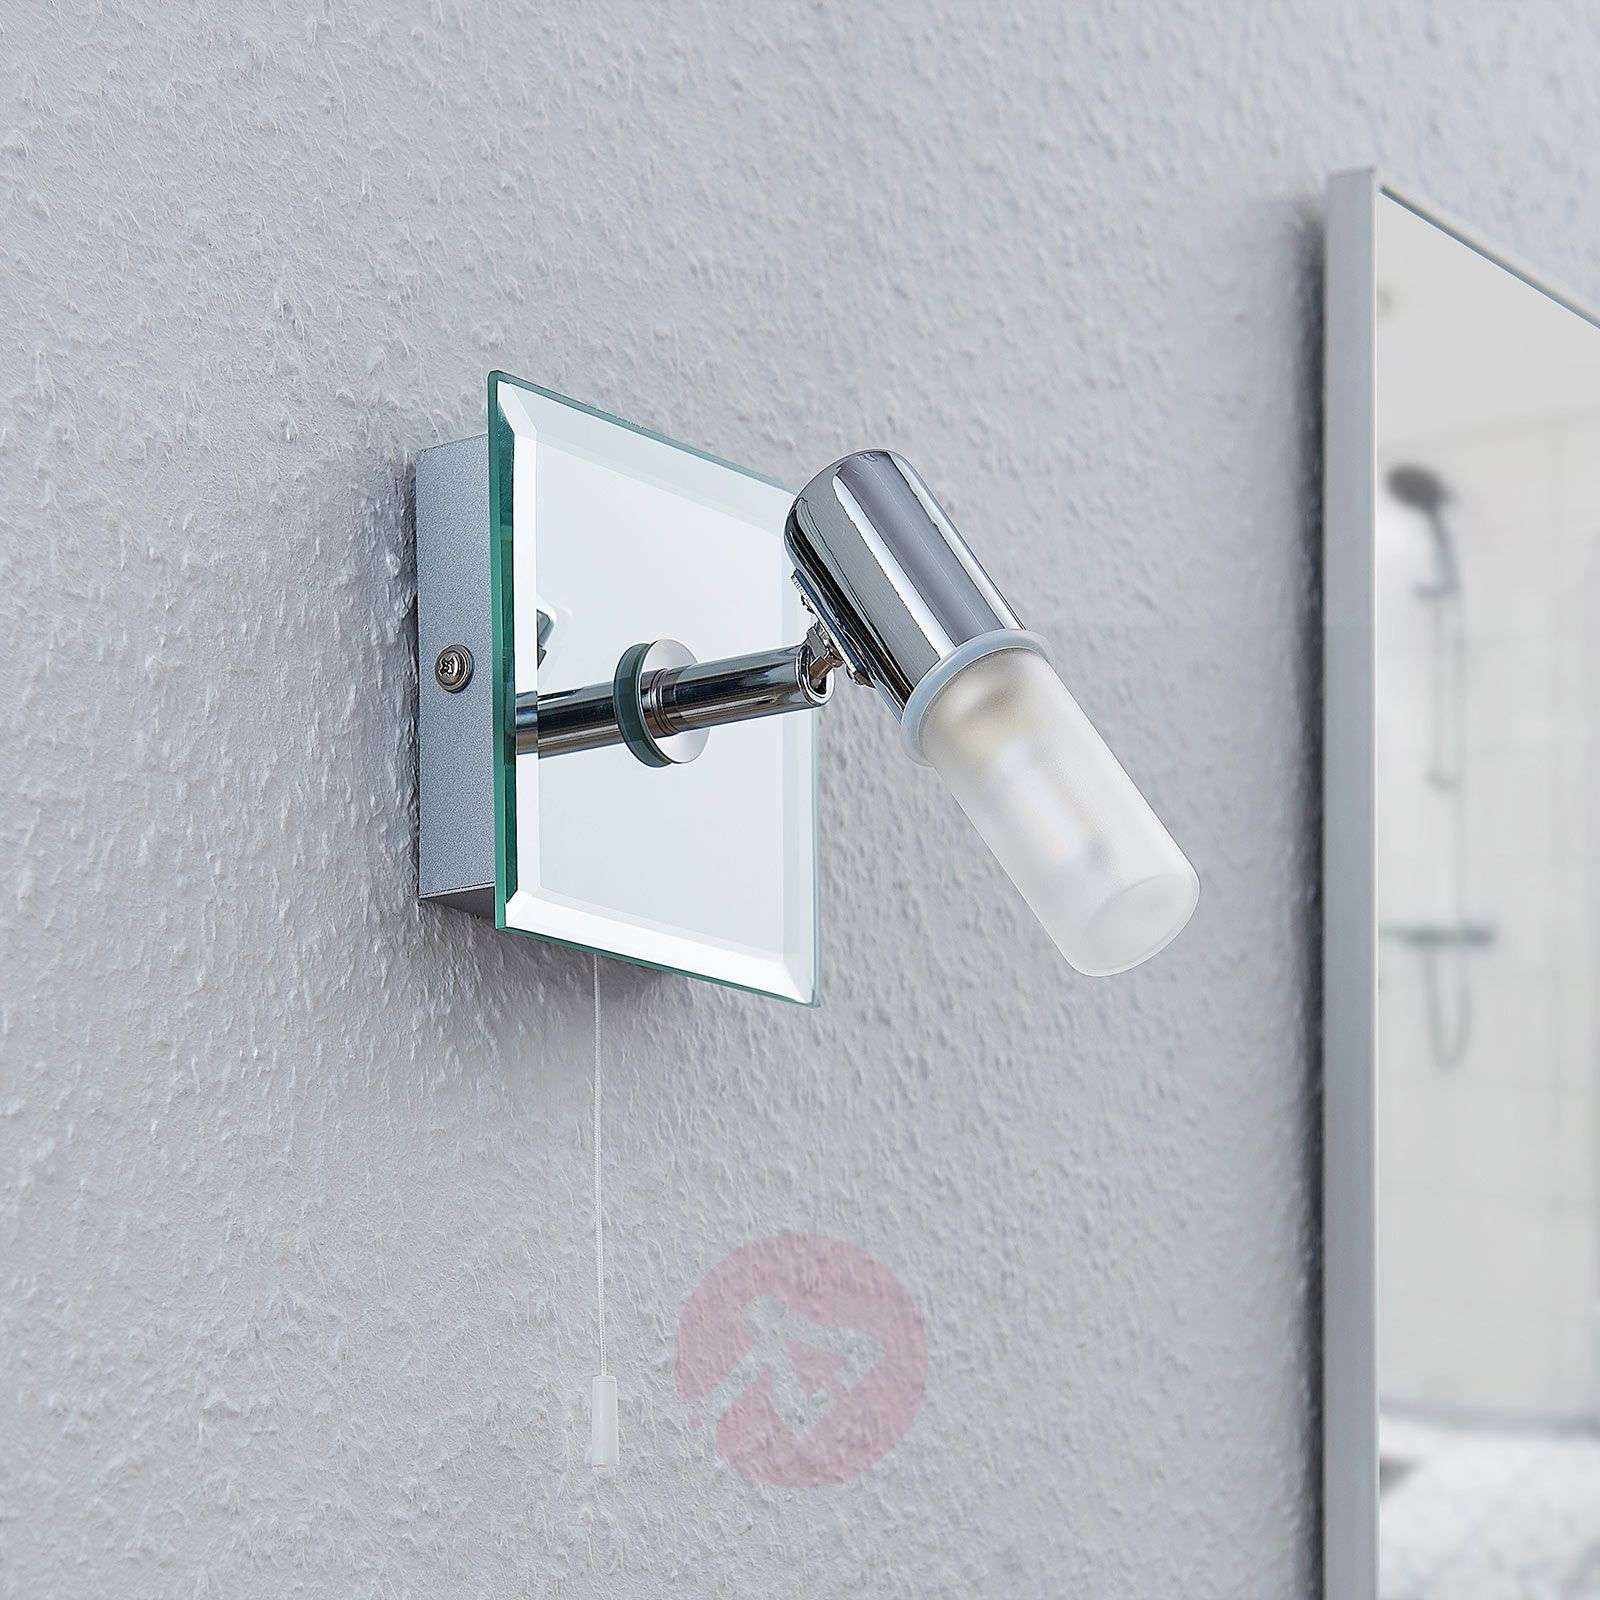 Lámpara de pared Zela, lámpara de baño interruptor-9624383-02